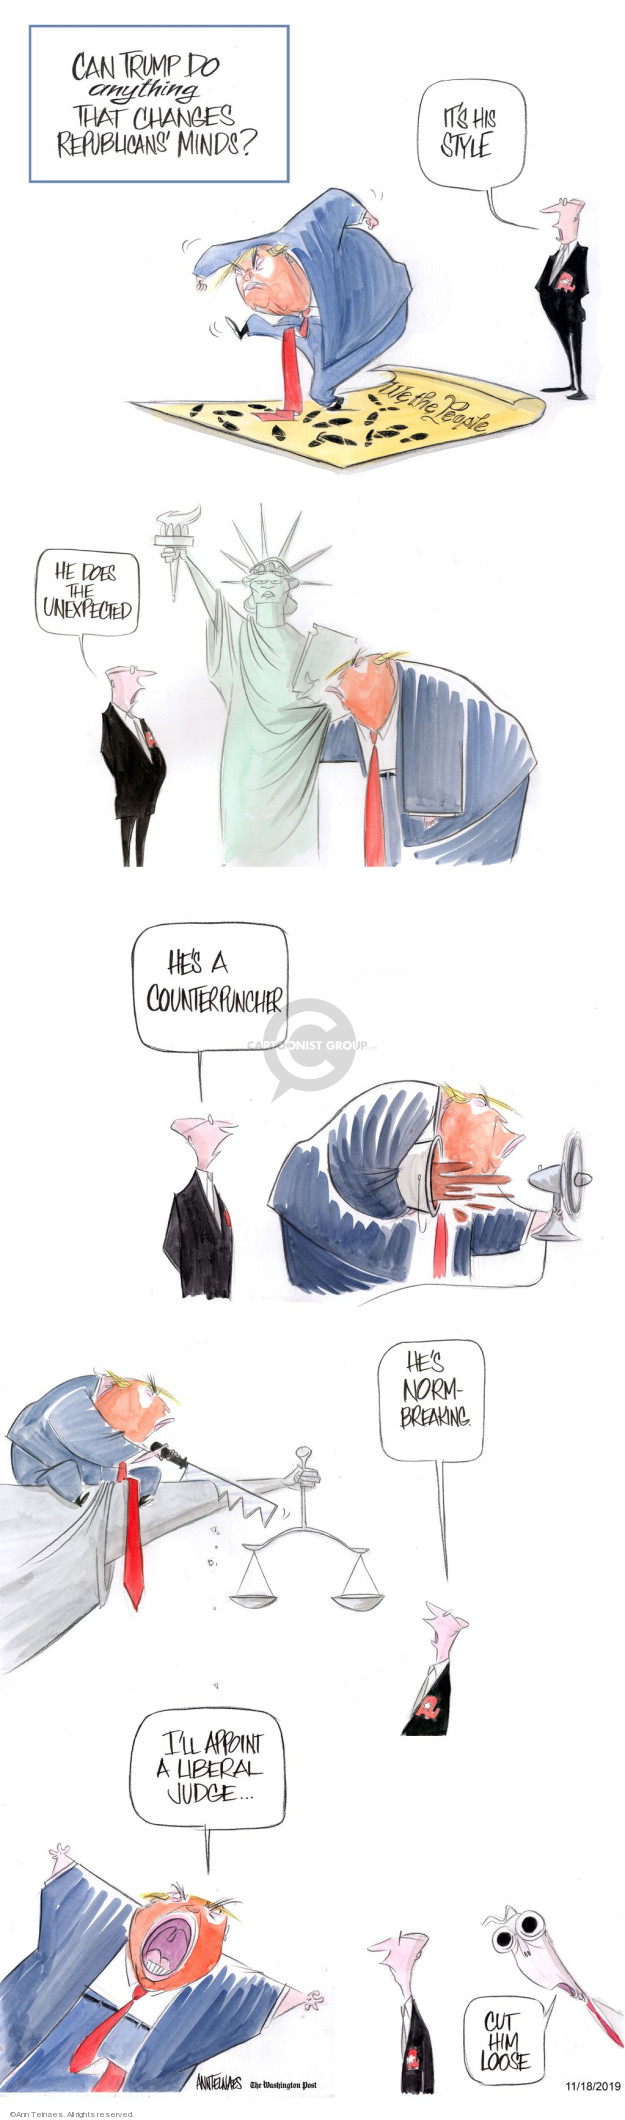 Cartoonist Ann Telnaes  Ann Telnaes' Editorial Cartoons 2019-11-18 republican president